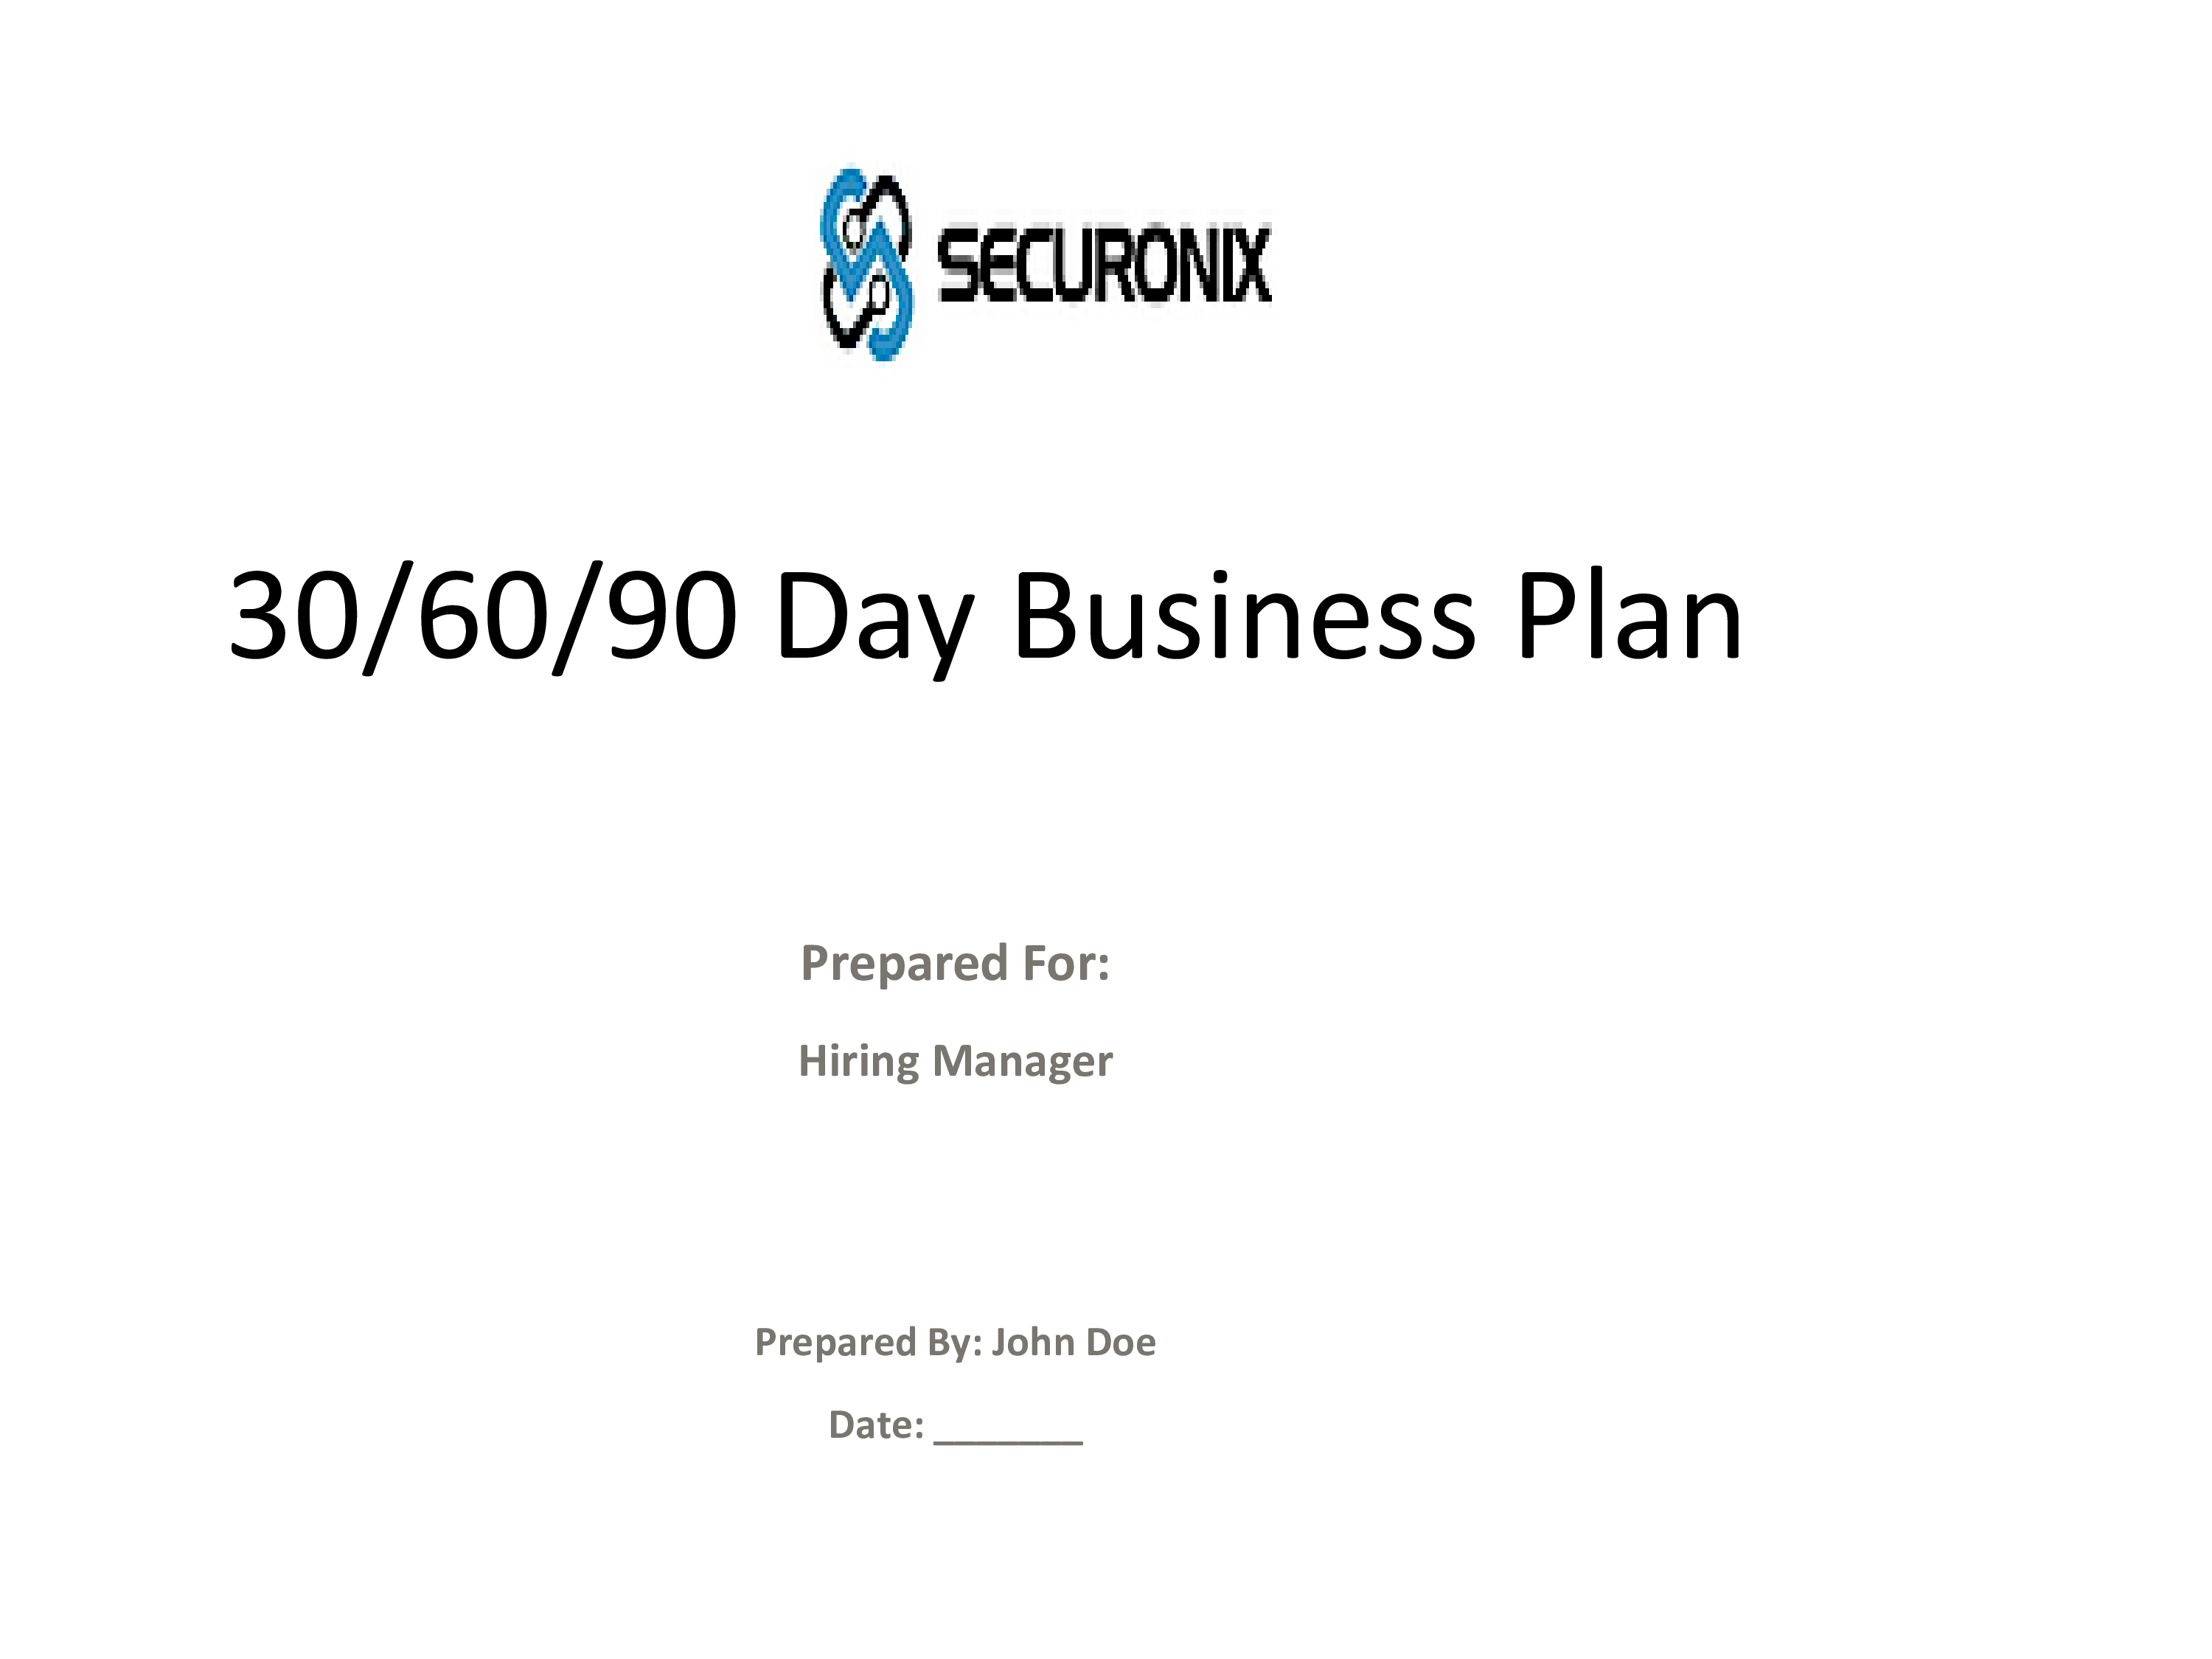 Free 90 day business plan templates at allbusinesstemplates 90 day business plan main image download template fbccfo Image collections